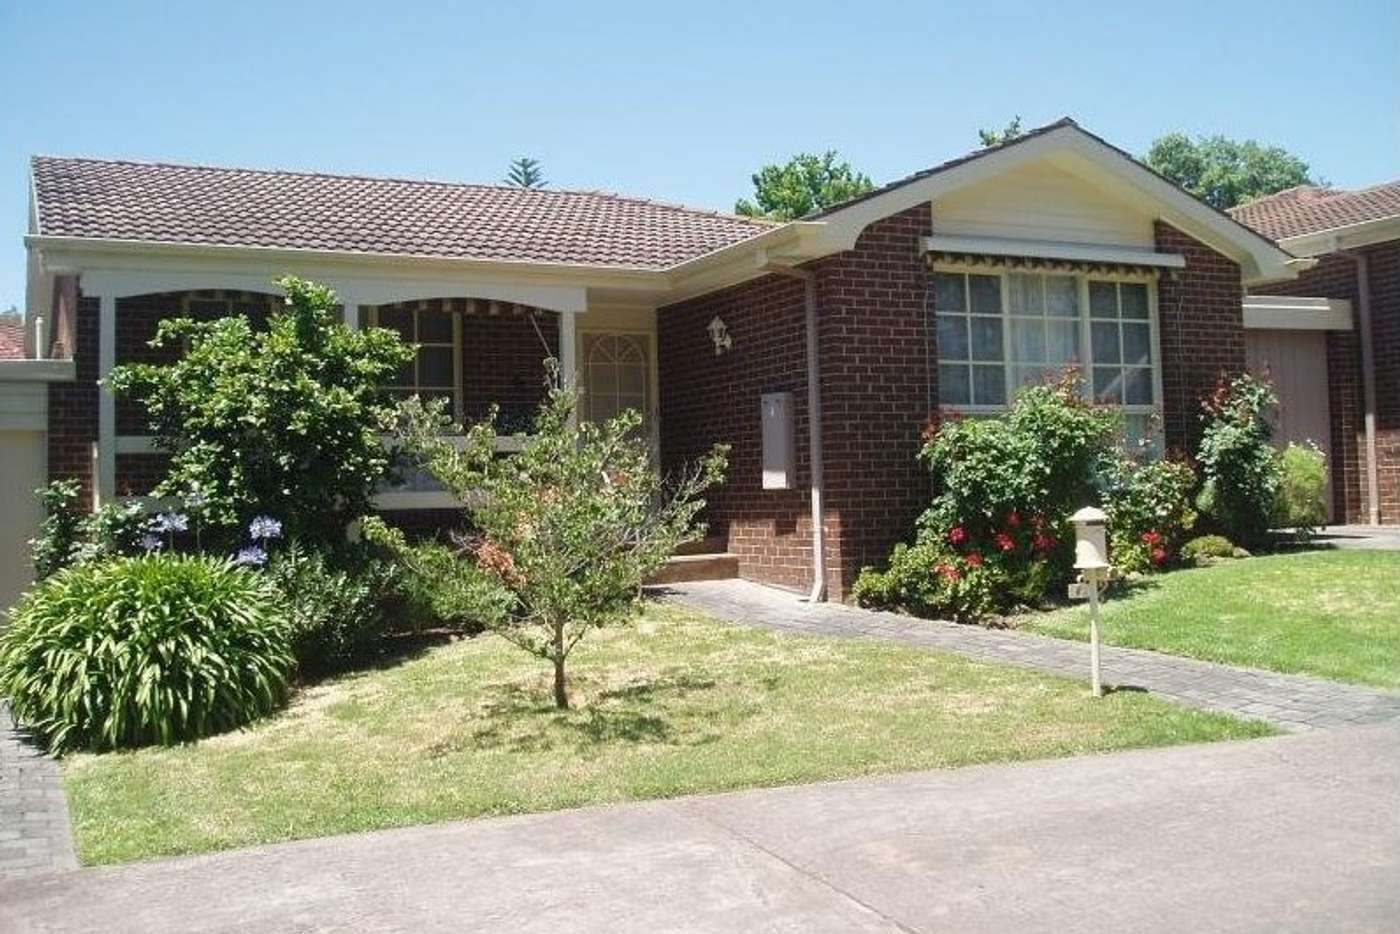 Main view of Homely unit listing, 4/13 Lindsay Avenue, Nunawading VIC 3131